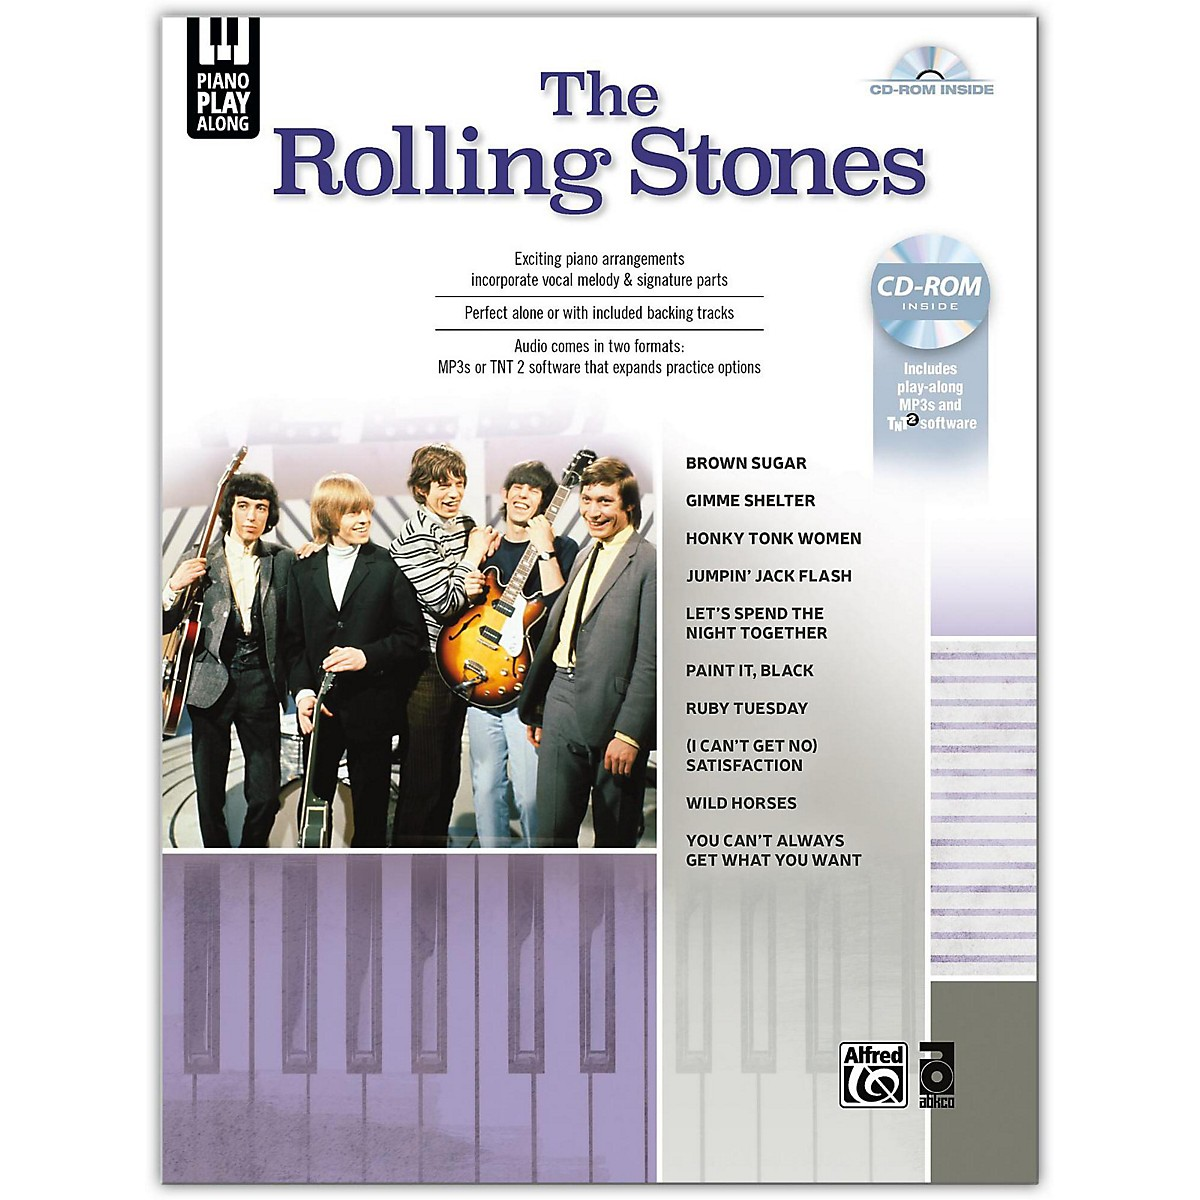 Alfred Piano Play-Along: The Rolling Stones Piano/Vocal Book & CD-ROM Songbook